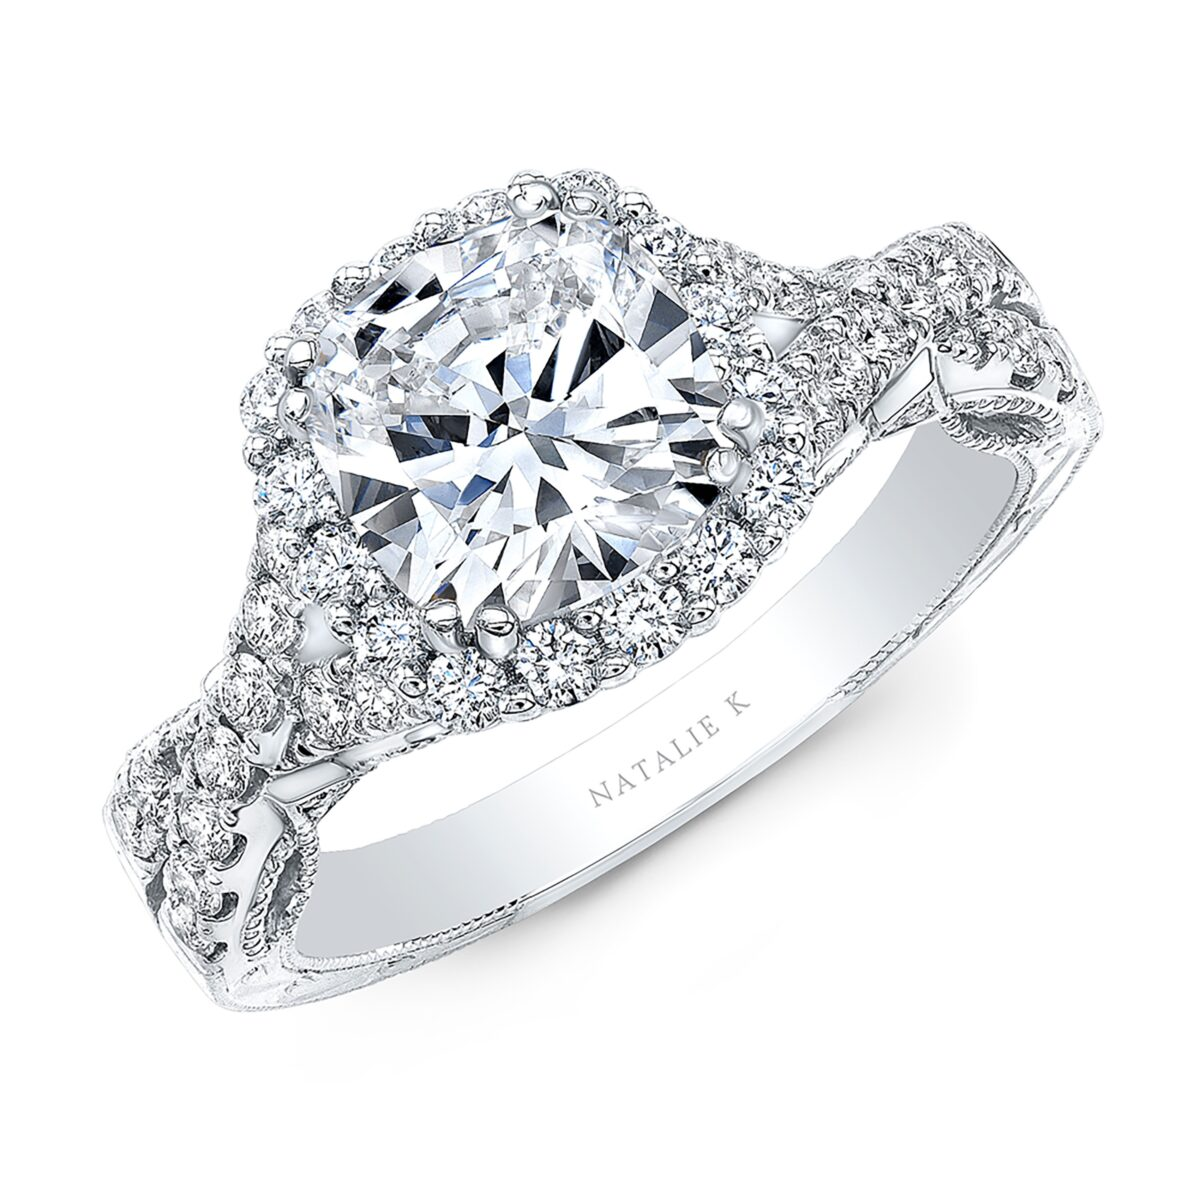 image natalie may k home one rings contain or closeup facebook people nataliekjewelry ring and engagement id media more